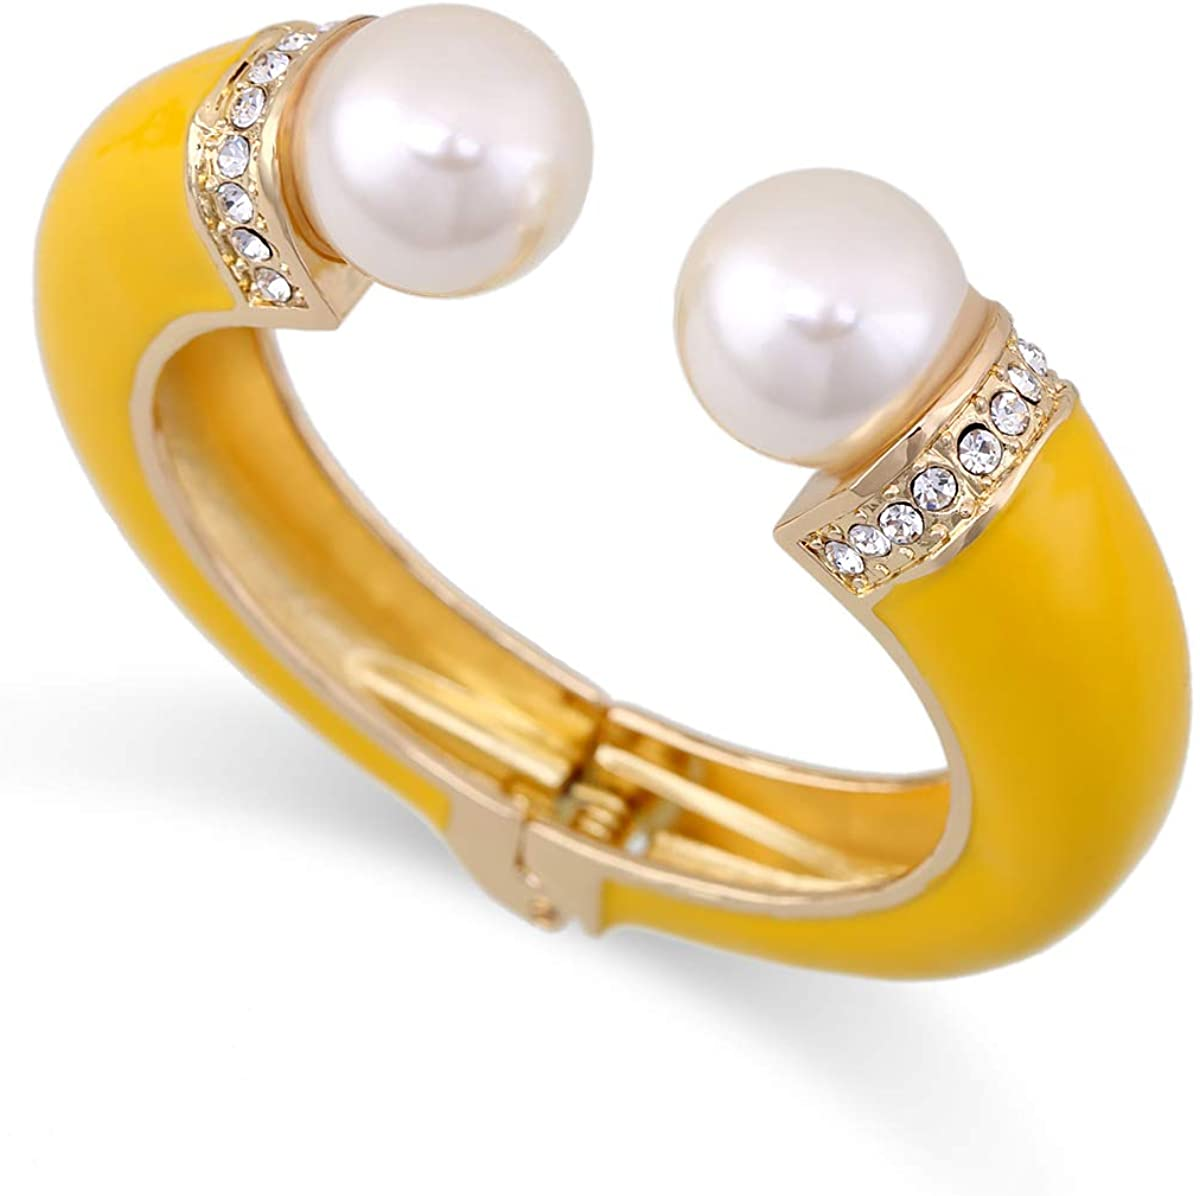 Women Double Pearls Cuff Bracelet Gold Plating and Enamel Statement Bangle Cuffs Jewelry 6 Colors